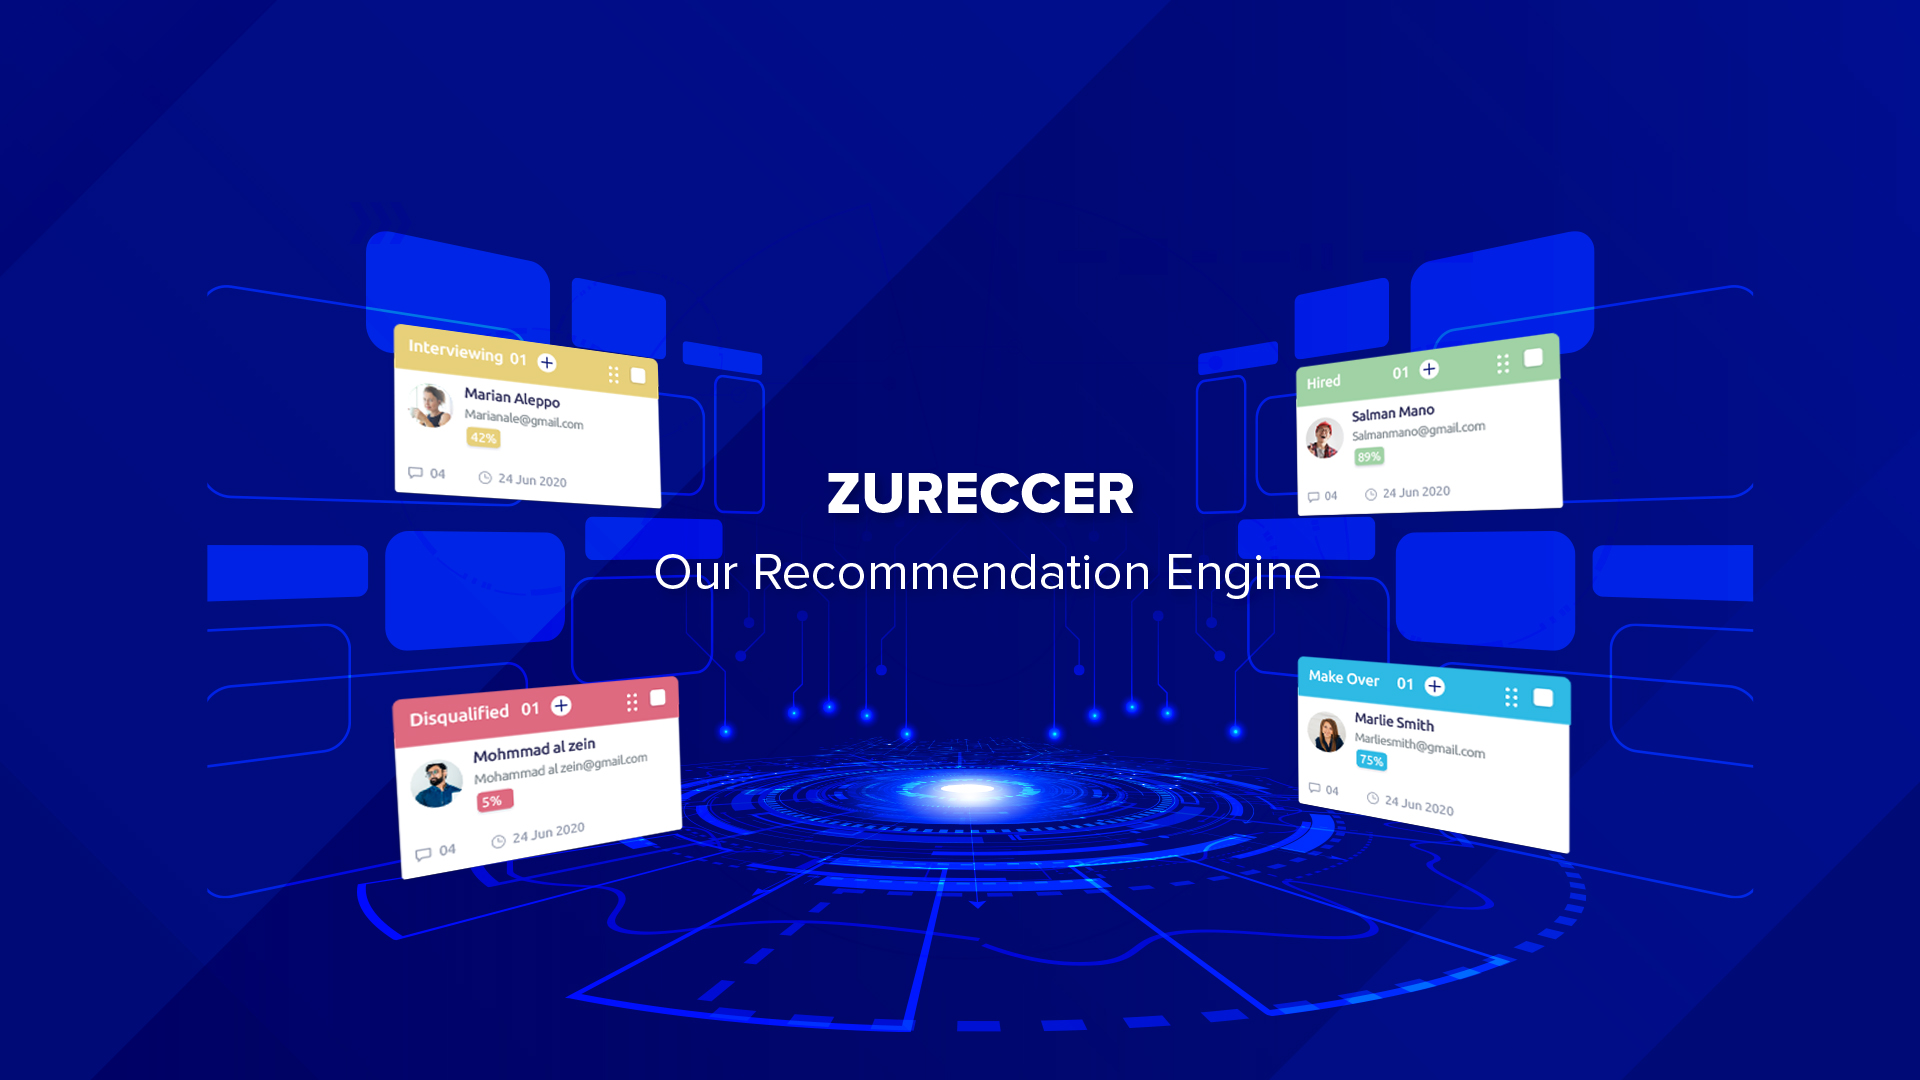 Picture of Zureccer, an engine that recommends Coursera and Udemy courses.